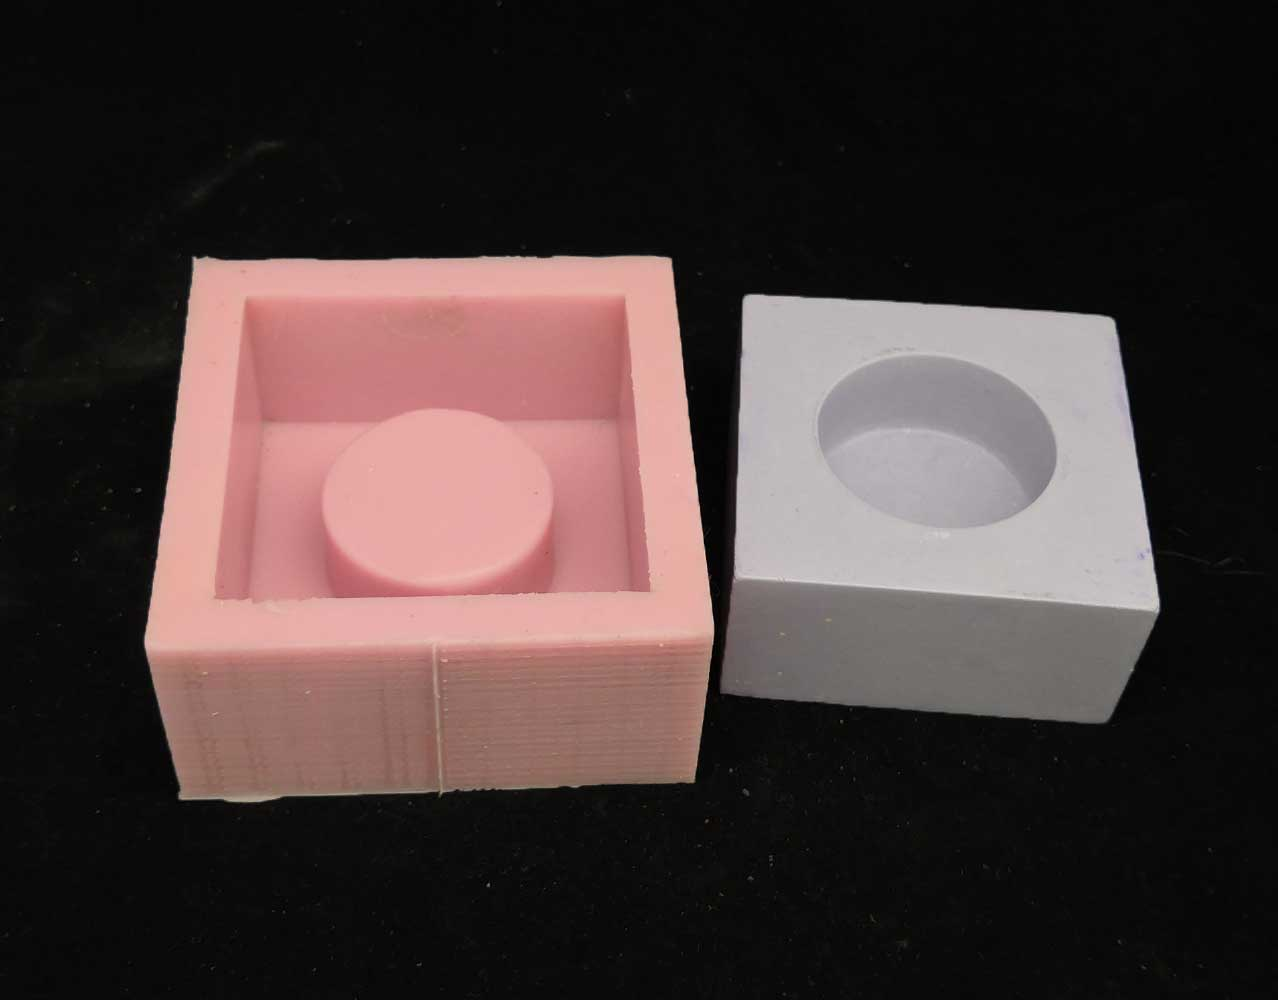 Candle Holder Silicone Mould Nedevdesign